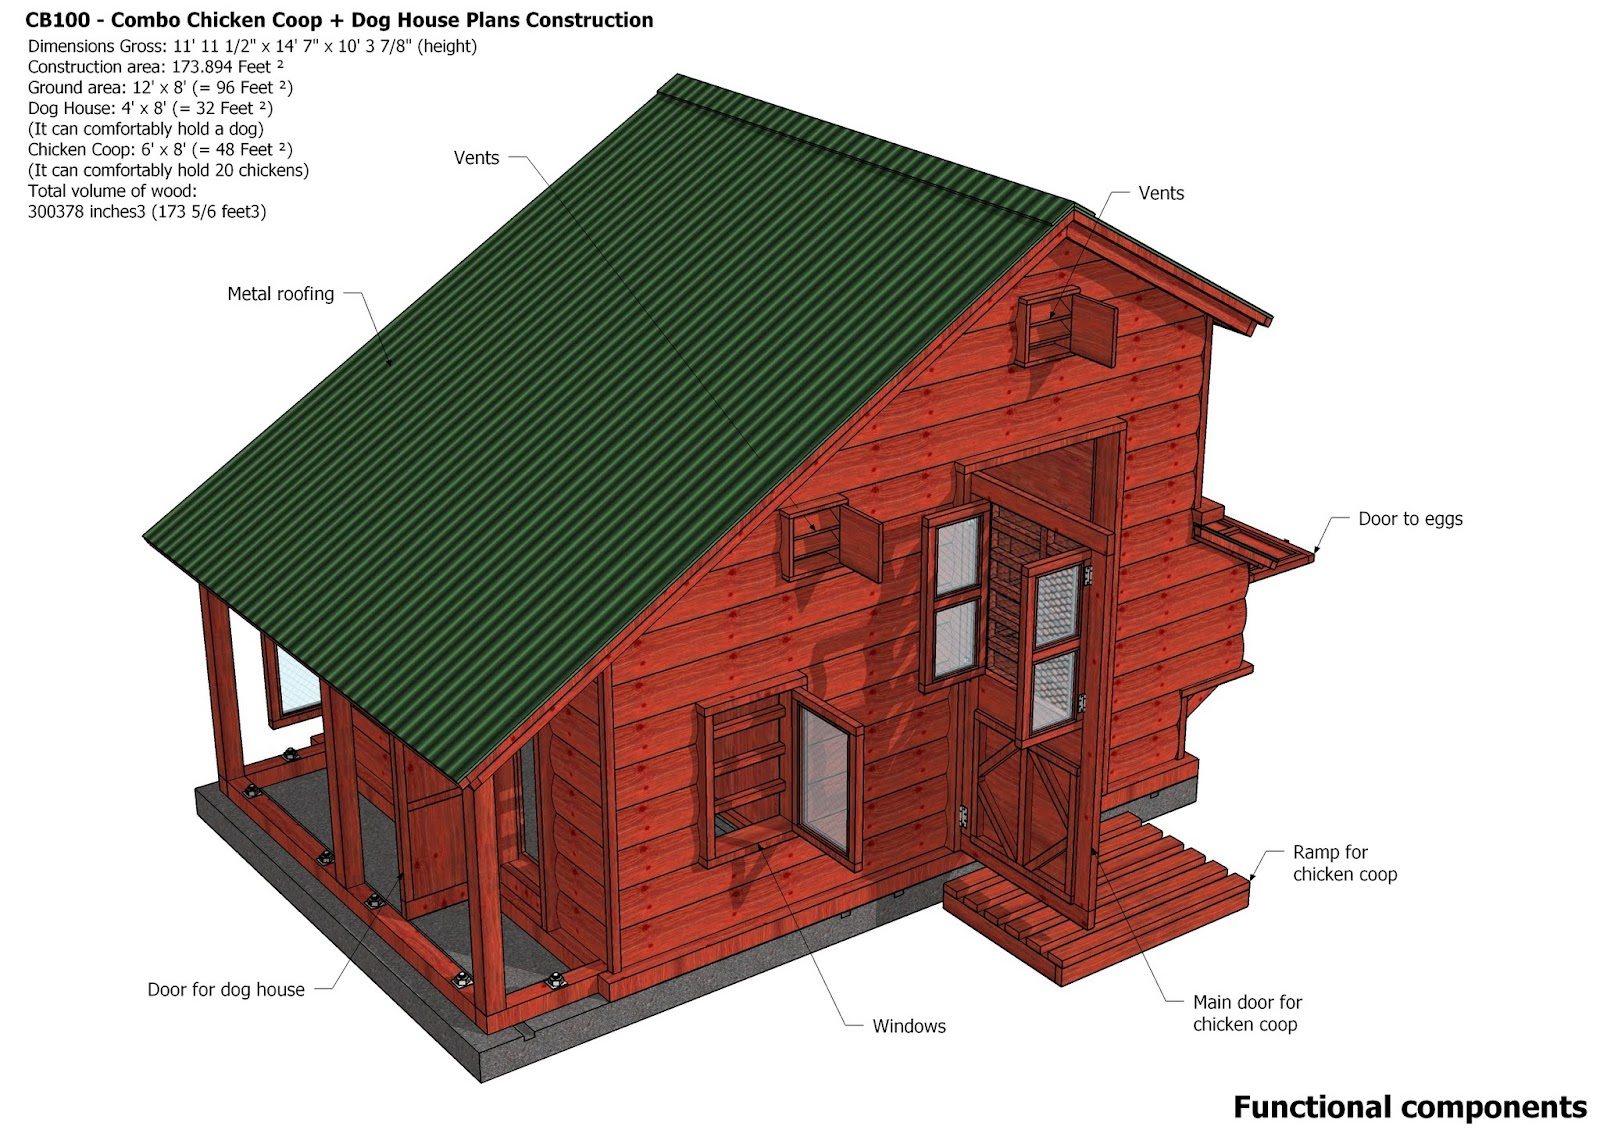 Home garden plans cb100 combo plans chicken coop for Insulated dog house plans pdf